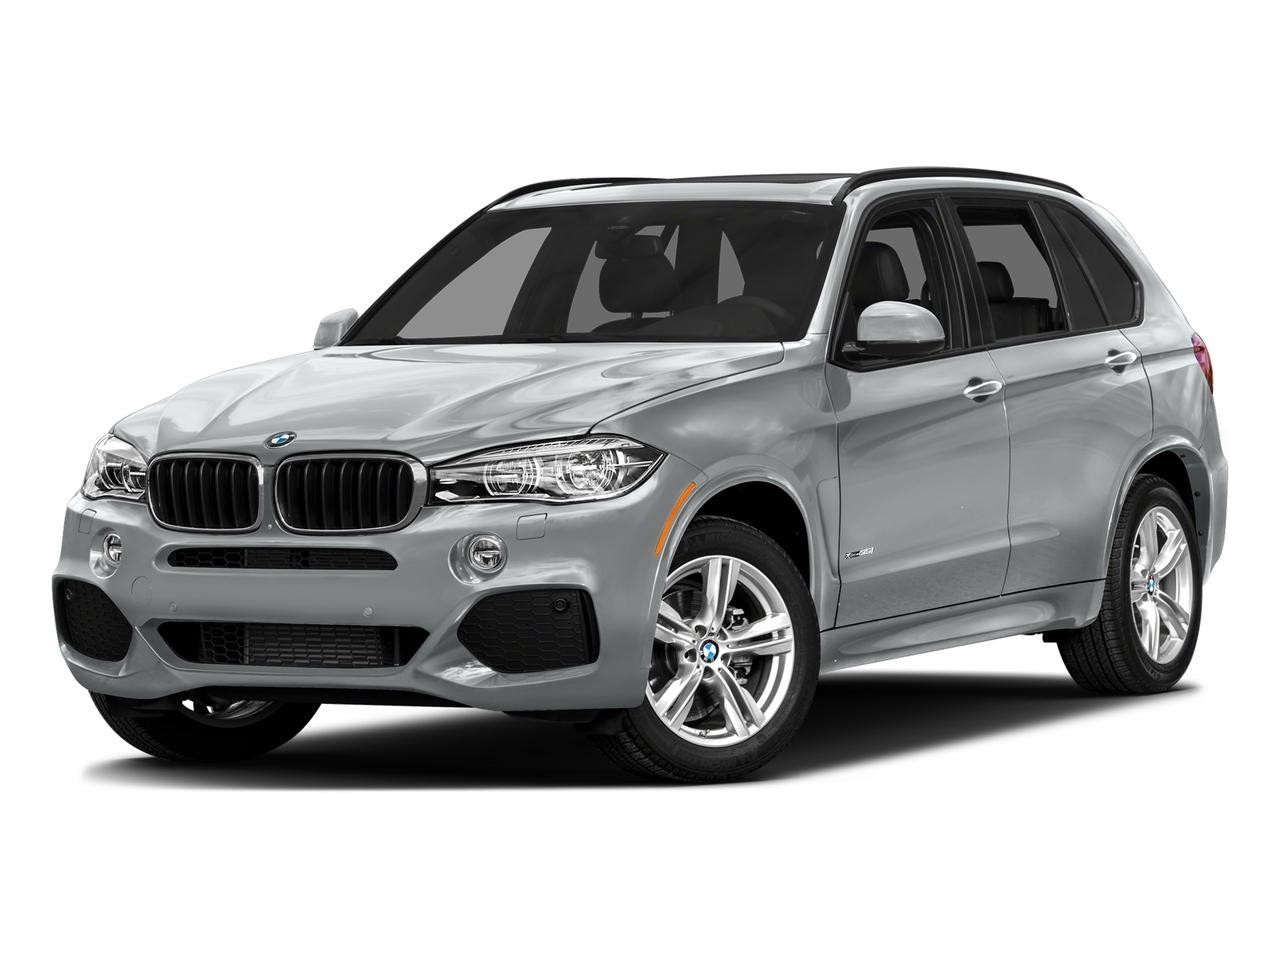 2016 BMW X5 xDrive50i Vehicle Photo in Baton Rouge, LA 70809